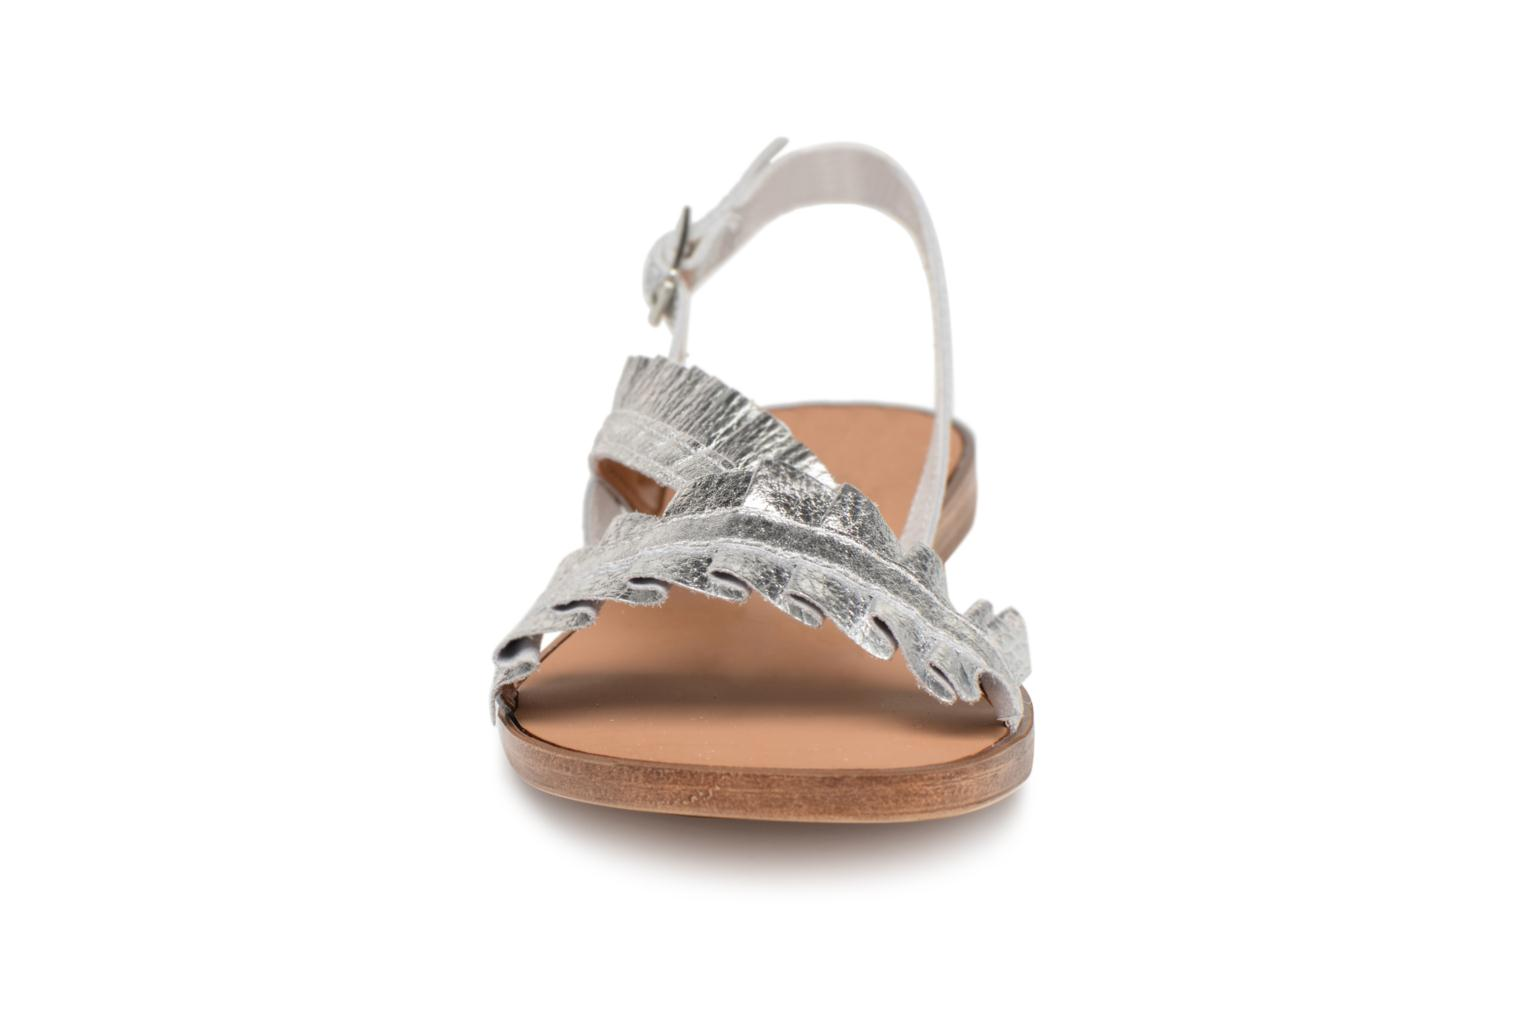 Silver Mindy Pieces Pieces leather leather Mindy sandal Silver sandal Pieces Mindy vx5PfI5q